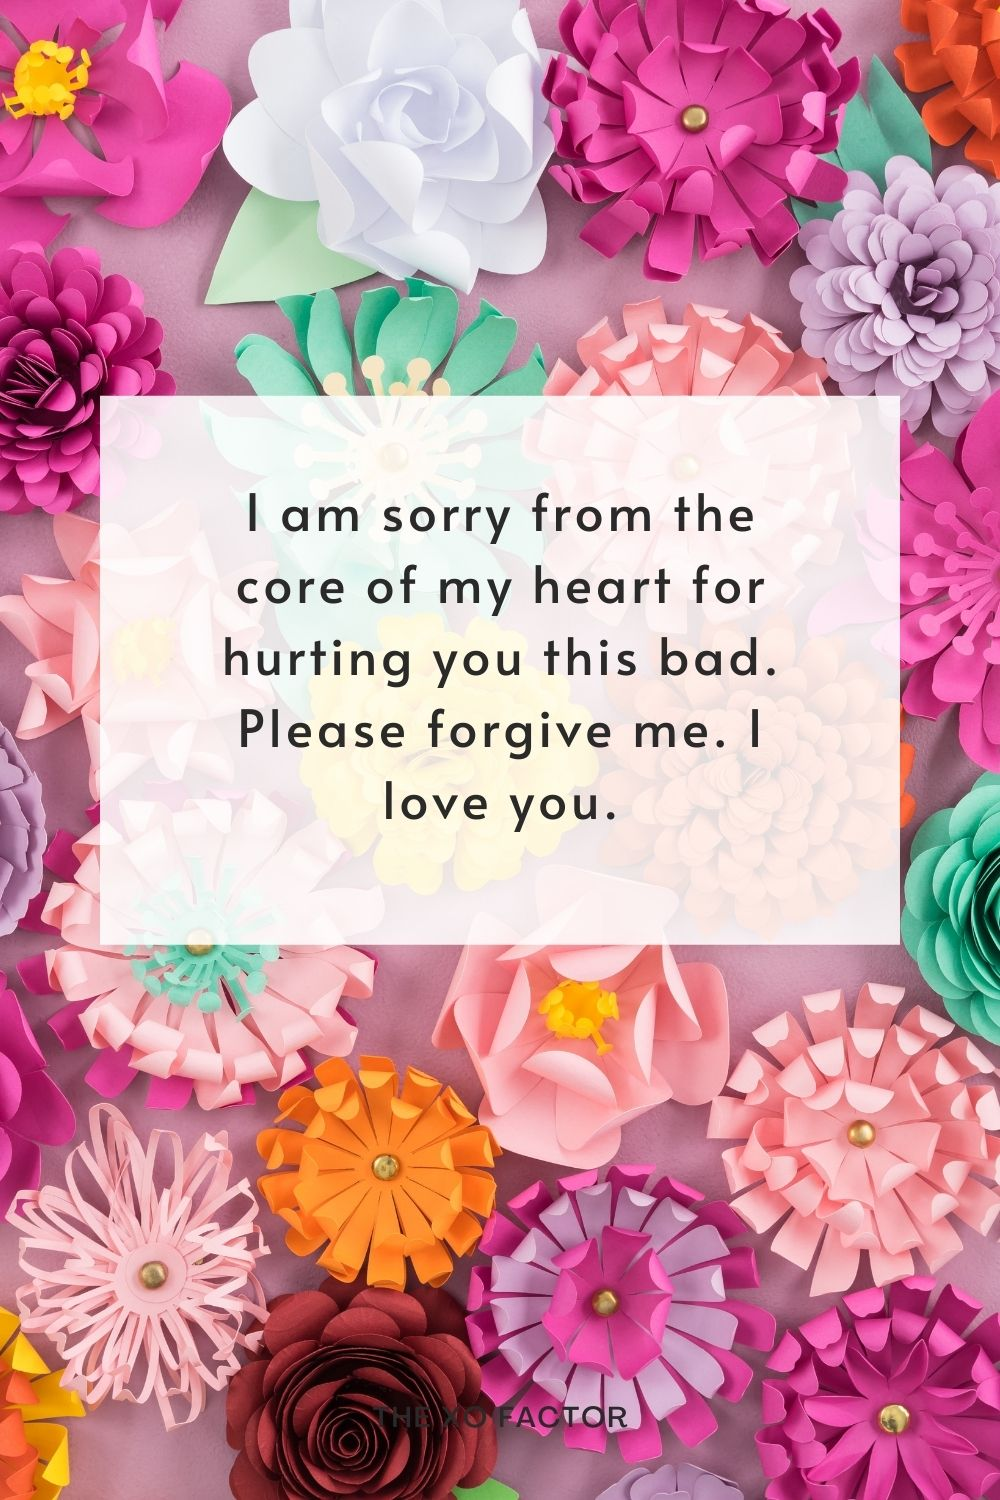 I am sorry from the core of my heart for hurting you this bad. Please forgive me. I love you.